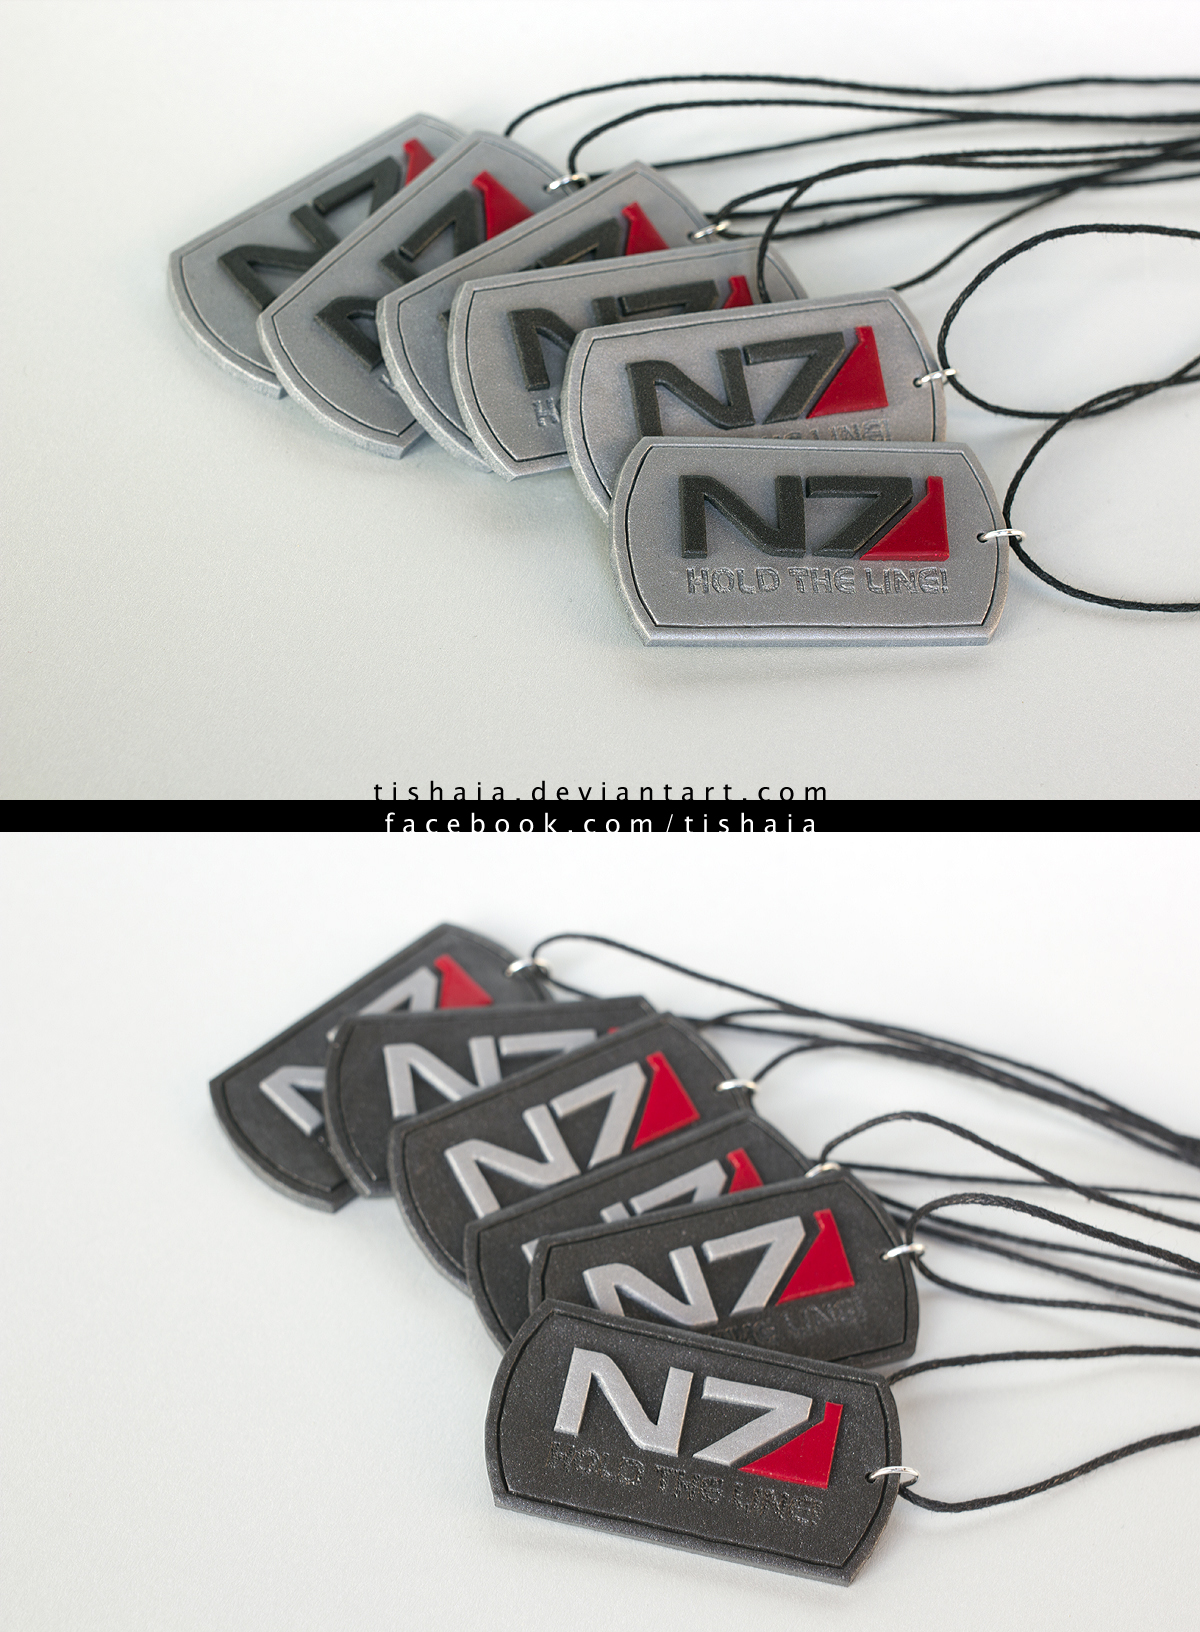 Hold the line! - dogtags by tishaia